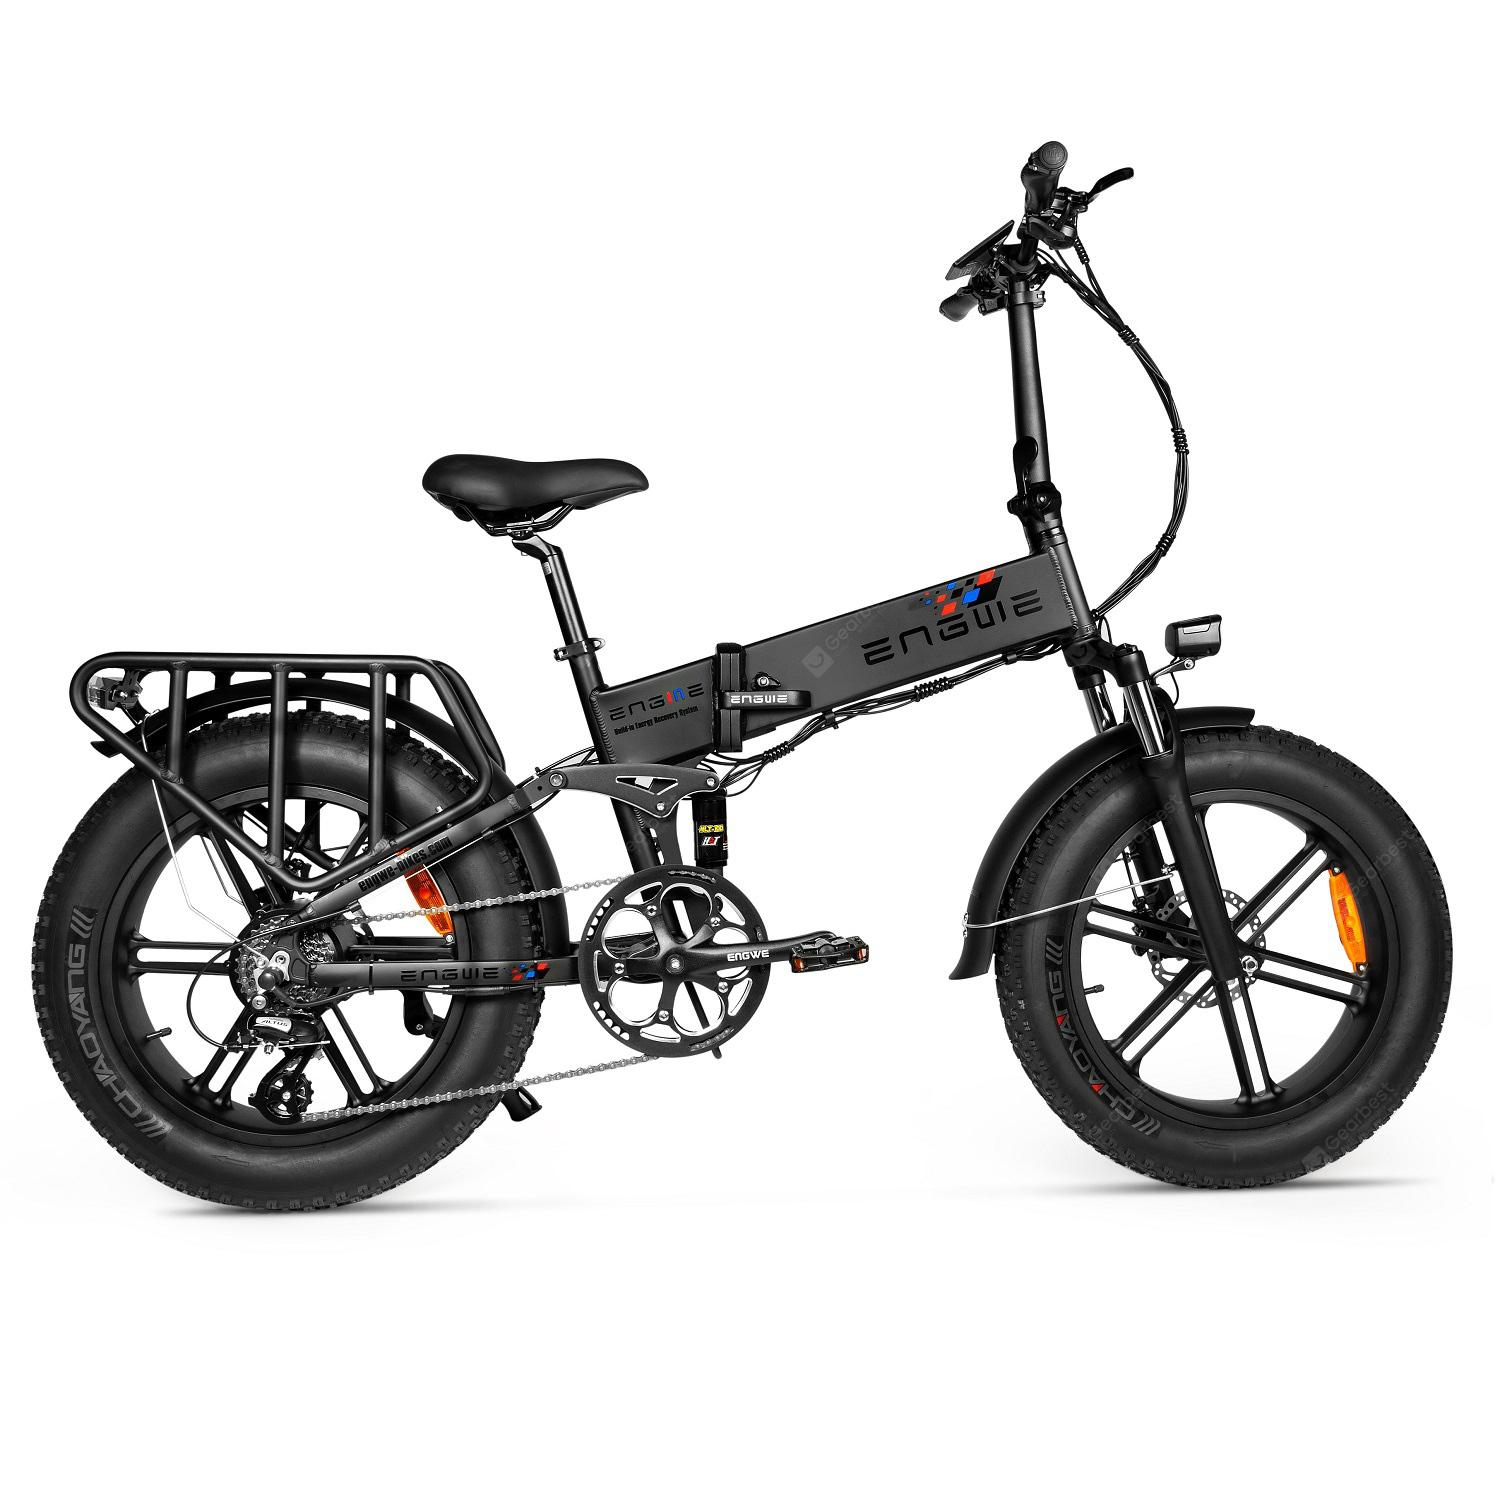 """ENGWE ENGINE PRO 750W Folding Fat Tire Electric Bike with 12.8Ah Battery and Hydraulic Suspension"" 3"